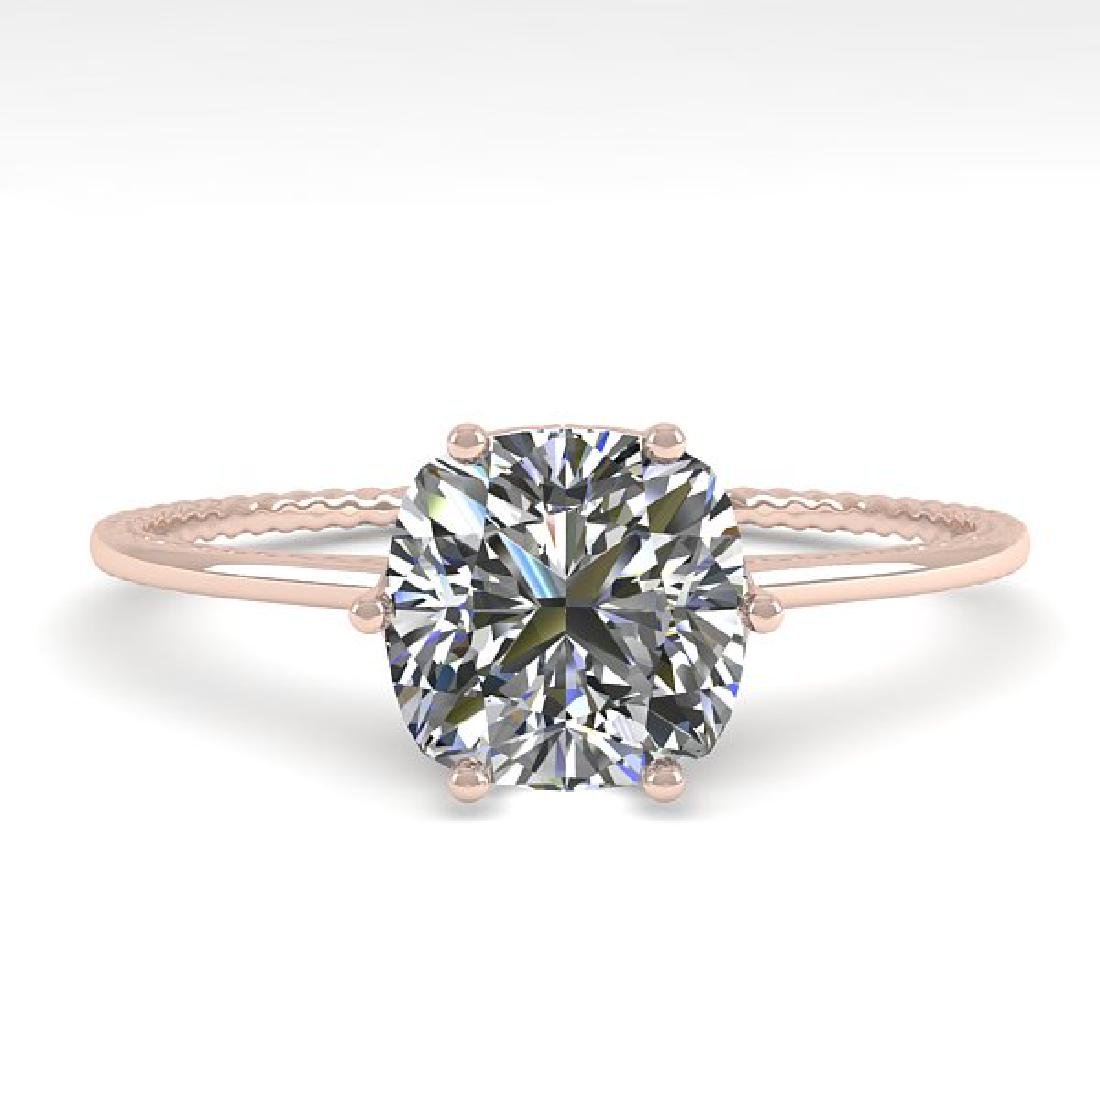 1.0 CTW VS/SI Cushion Diamond Solitaire Engagement Ring